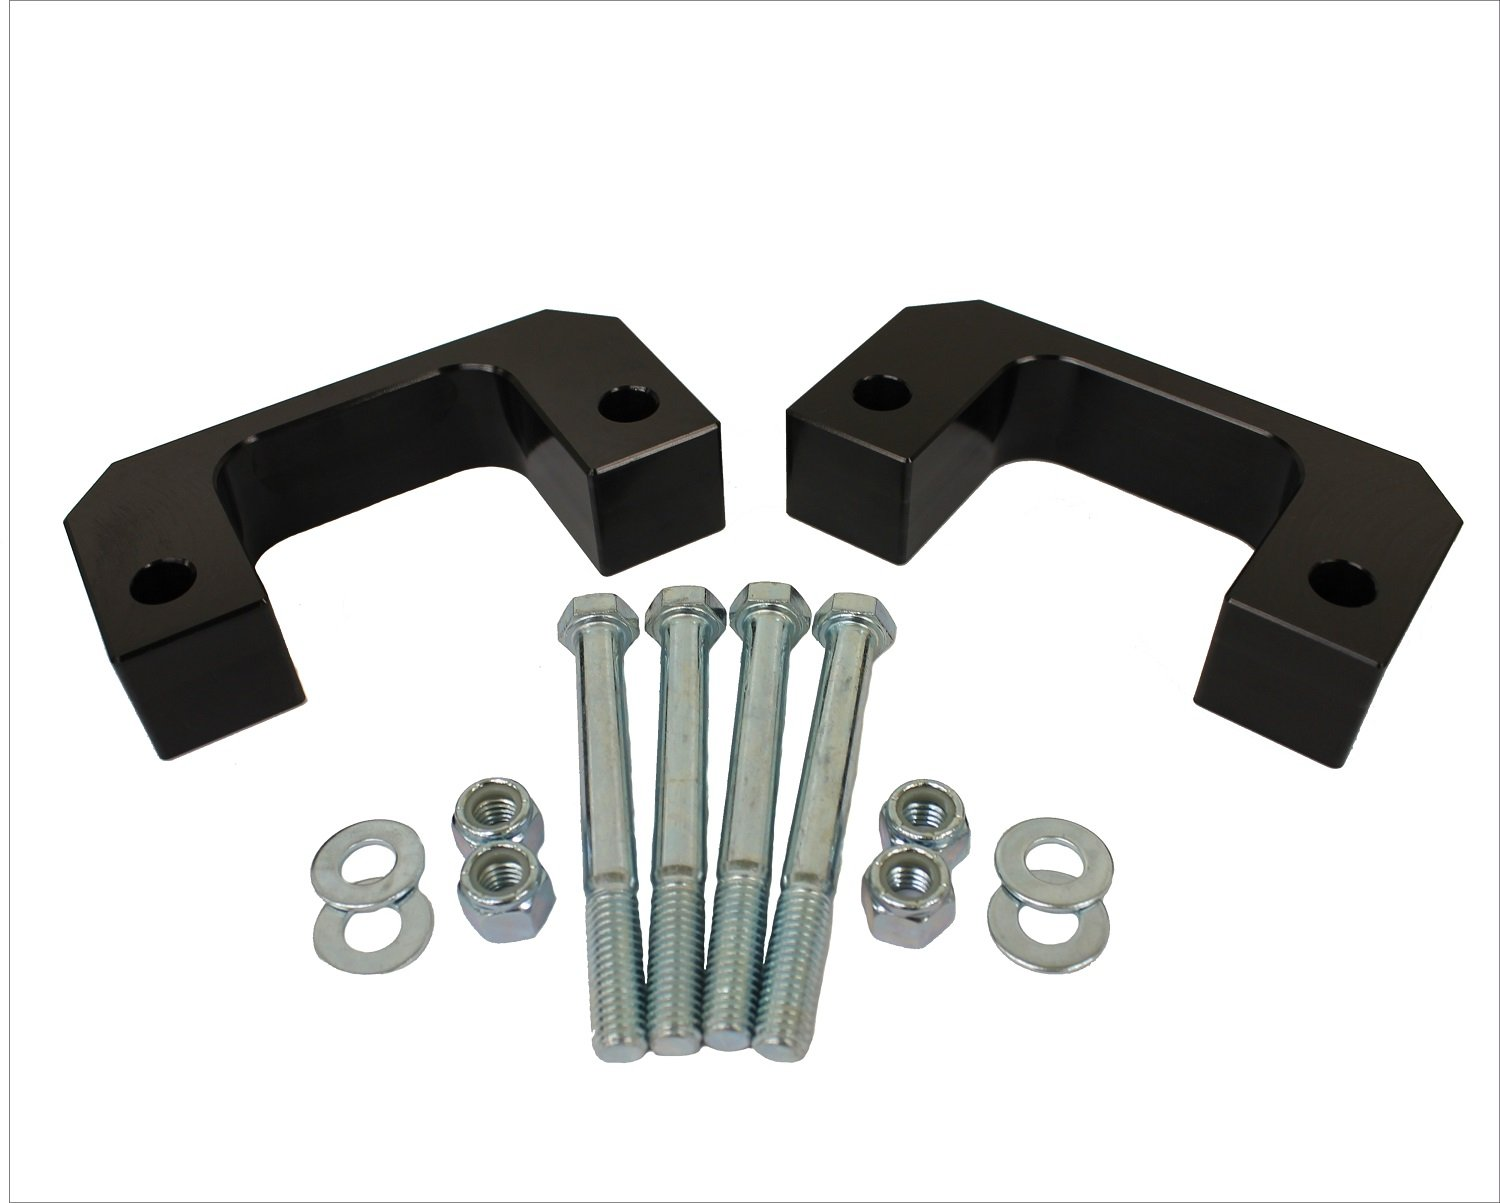 1.5 Front Leveling Lift Kit That Will Raise The Front Of Your Chevy//Gmc Pickup 1.5 MotoFab Lifts CH-15LM